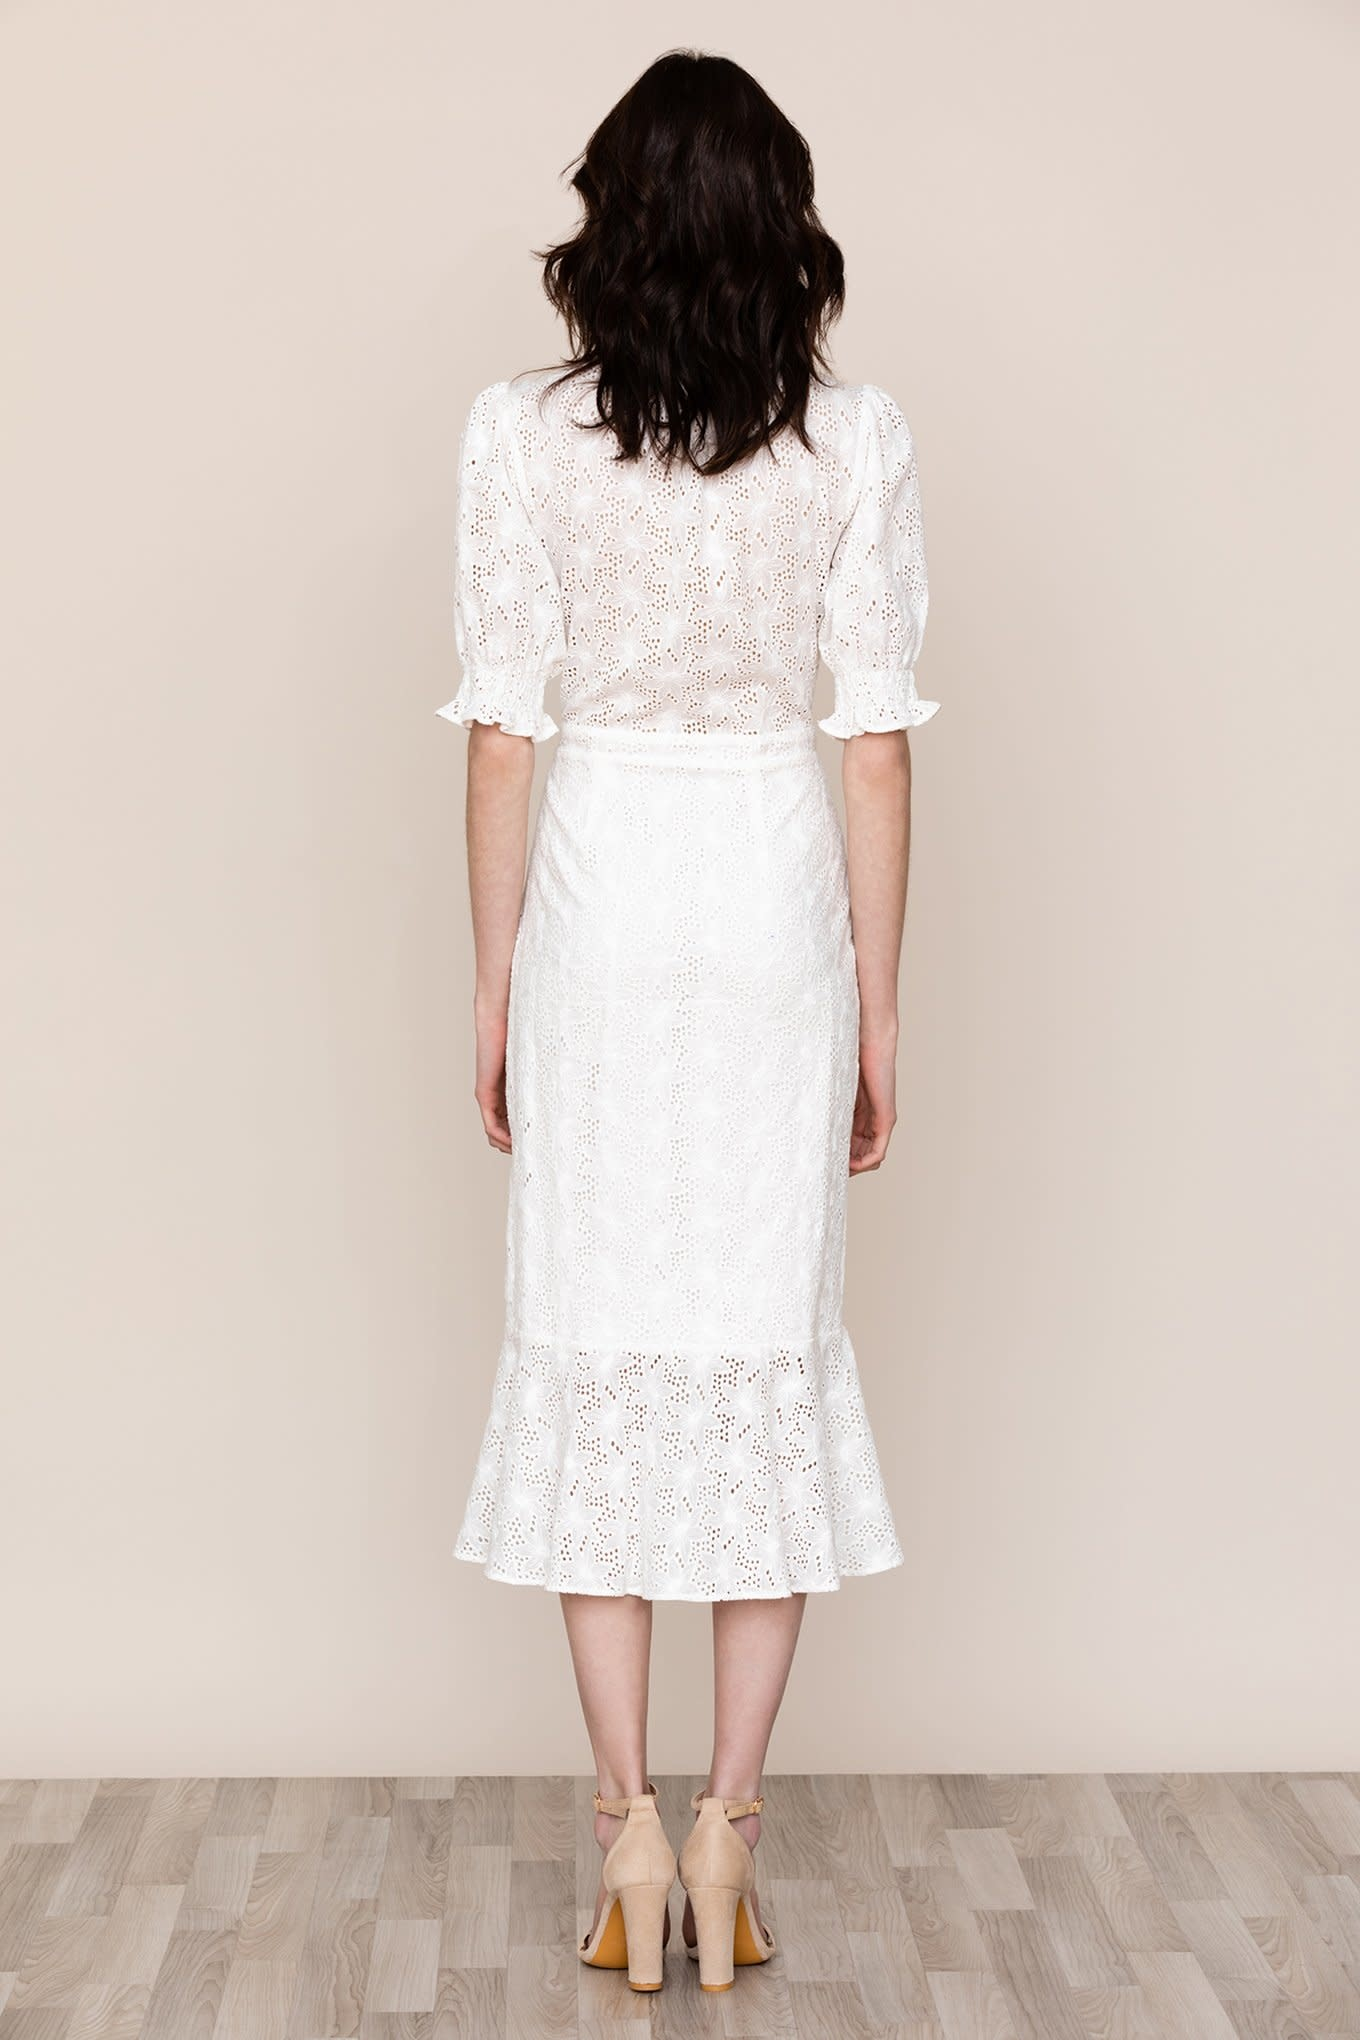 Yumi Kim Savannah Dress